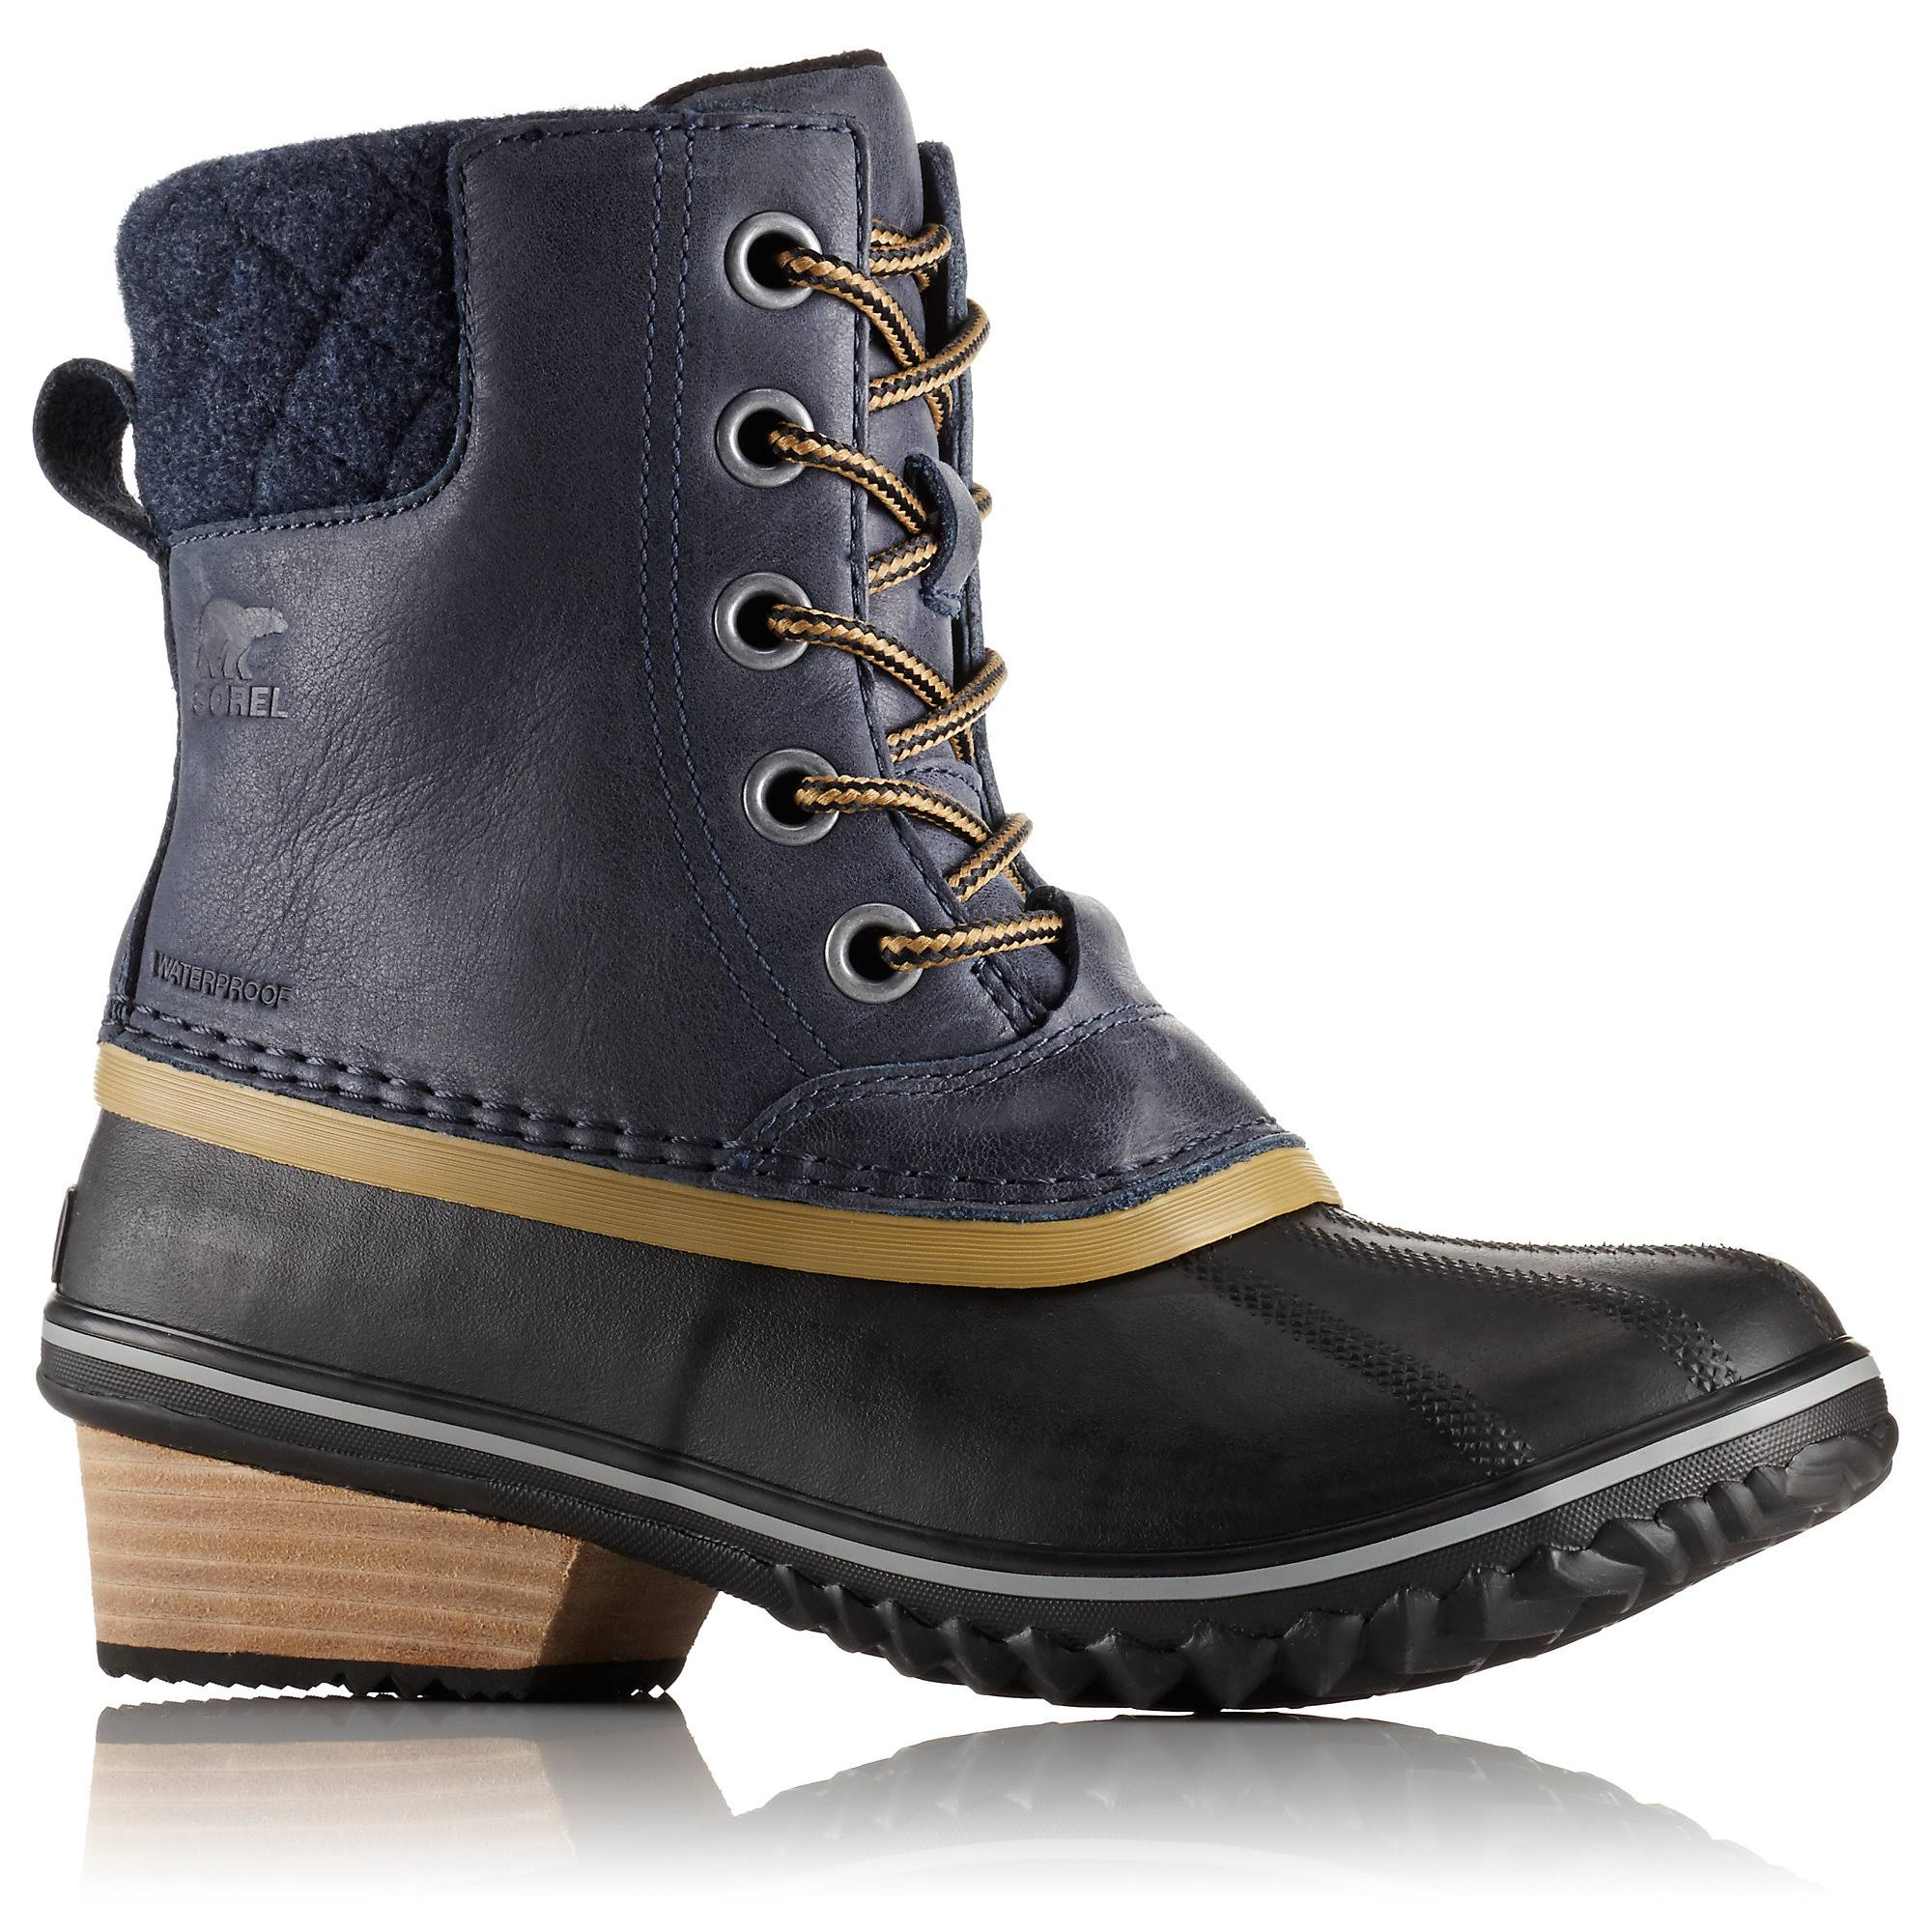 Slimpack Winter Waterproof Kanten Duck Collegiate Boots Sorel Rain Snow Dames Ii tQxrdshC